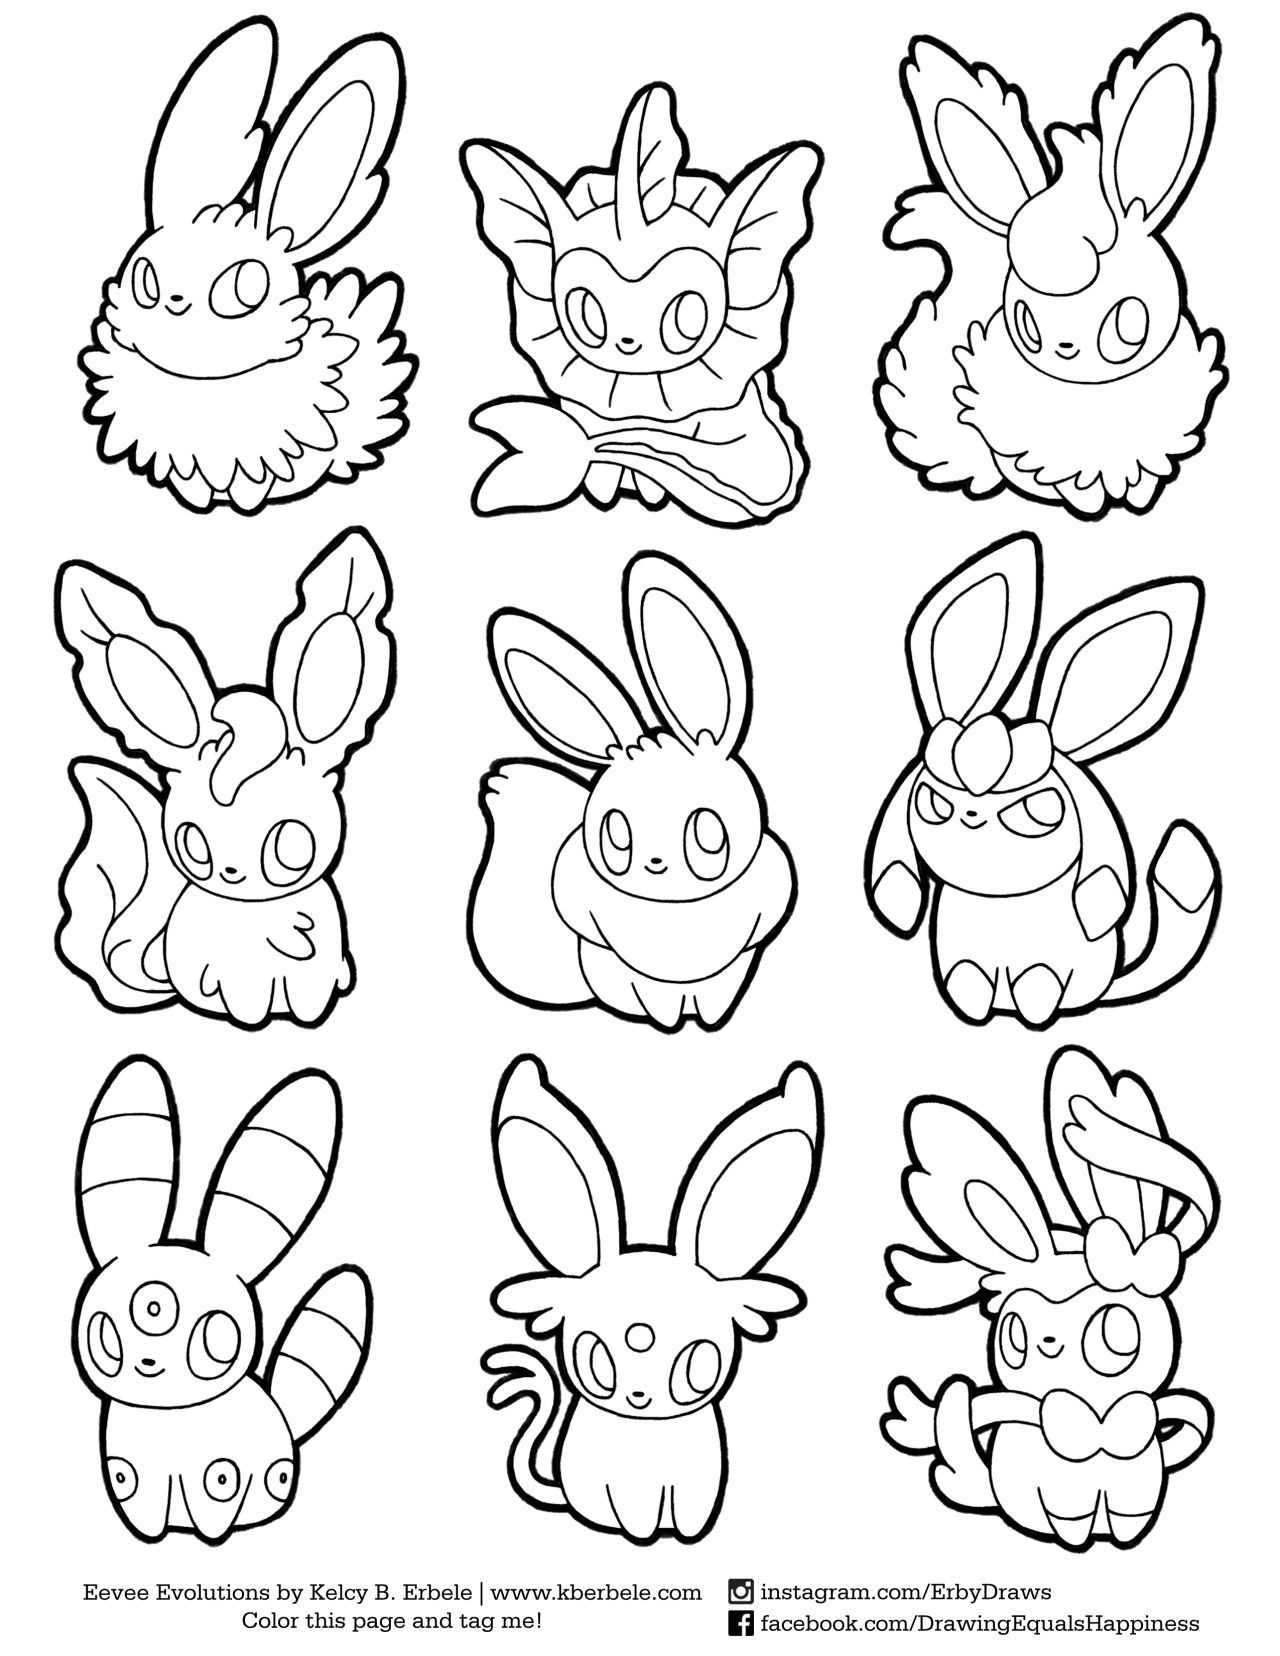 1280x1656 Eeveelution Coloring Page The File Is On My Drawing Happiness.jpg